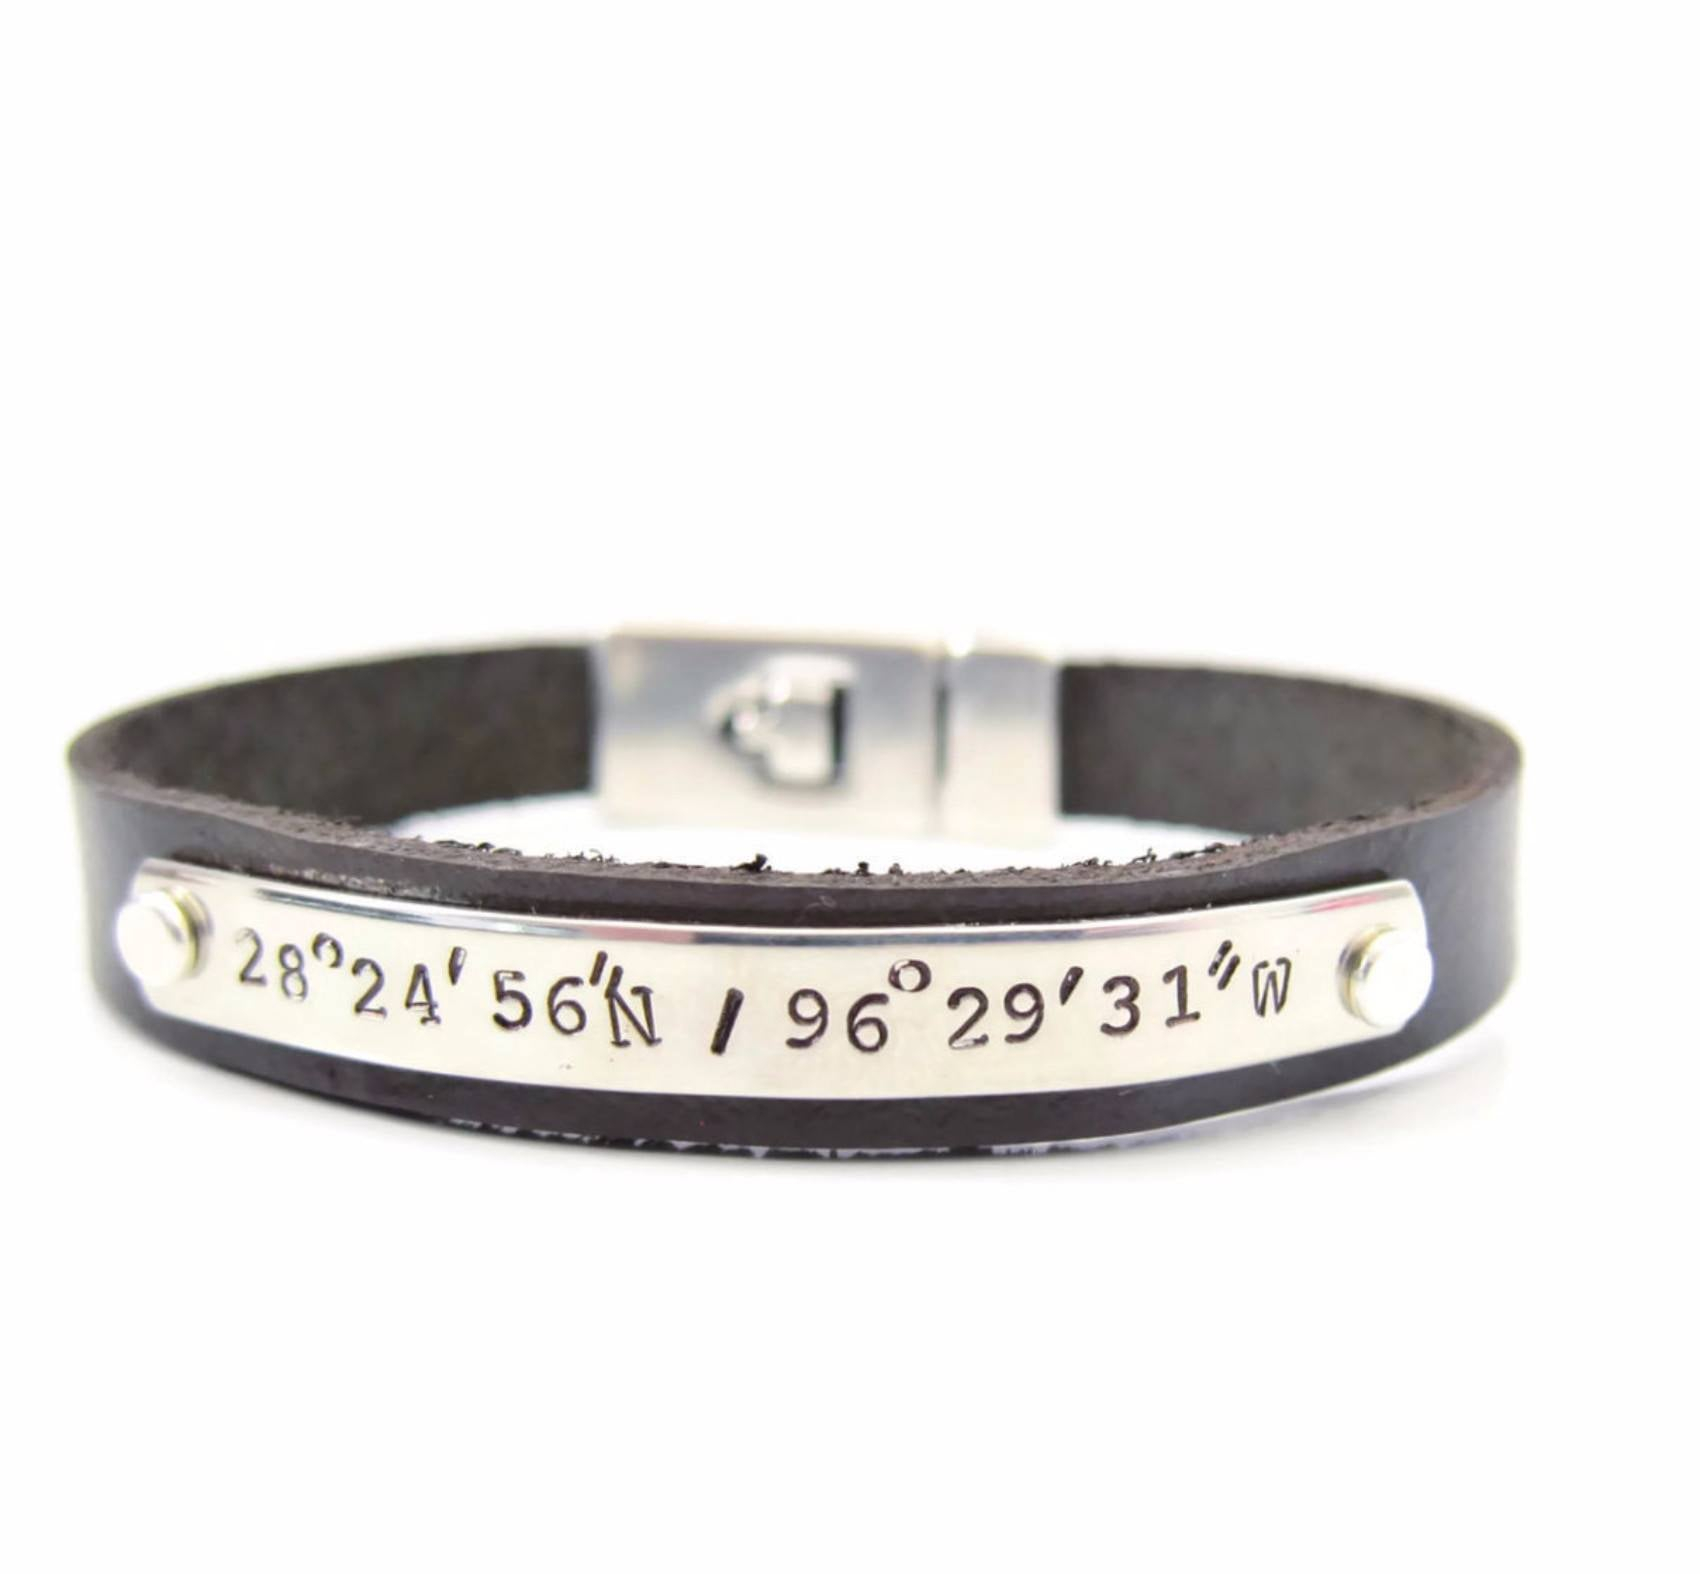 dp com jewelry bracelet long amazon personalized coordinates longitude lat custom gifts latitude travel handmade coordinate